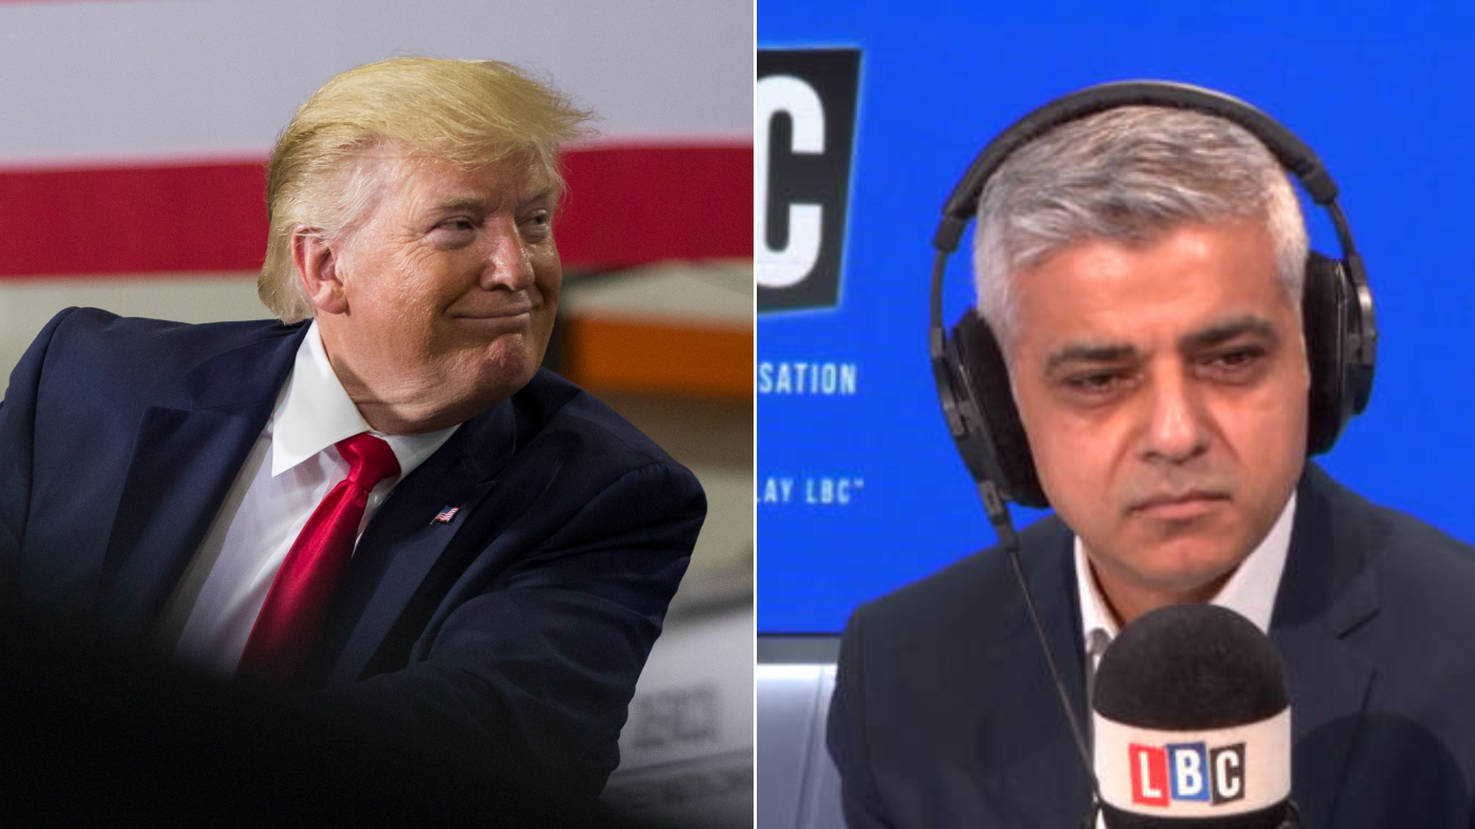 Sadiq Khan: Trump's Words Are The Words Of A Racist